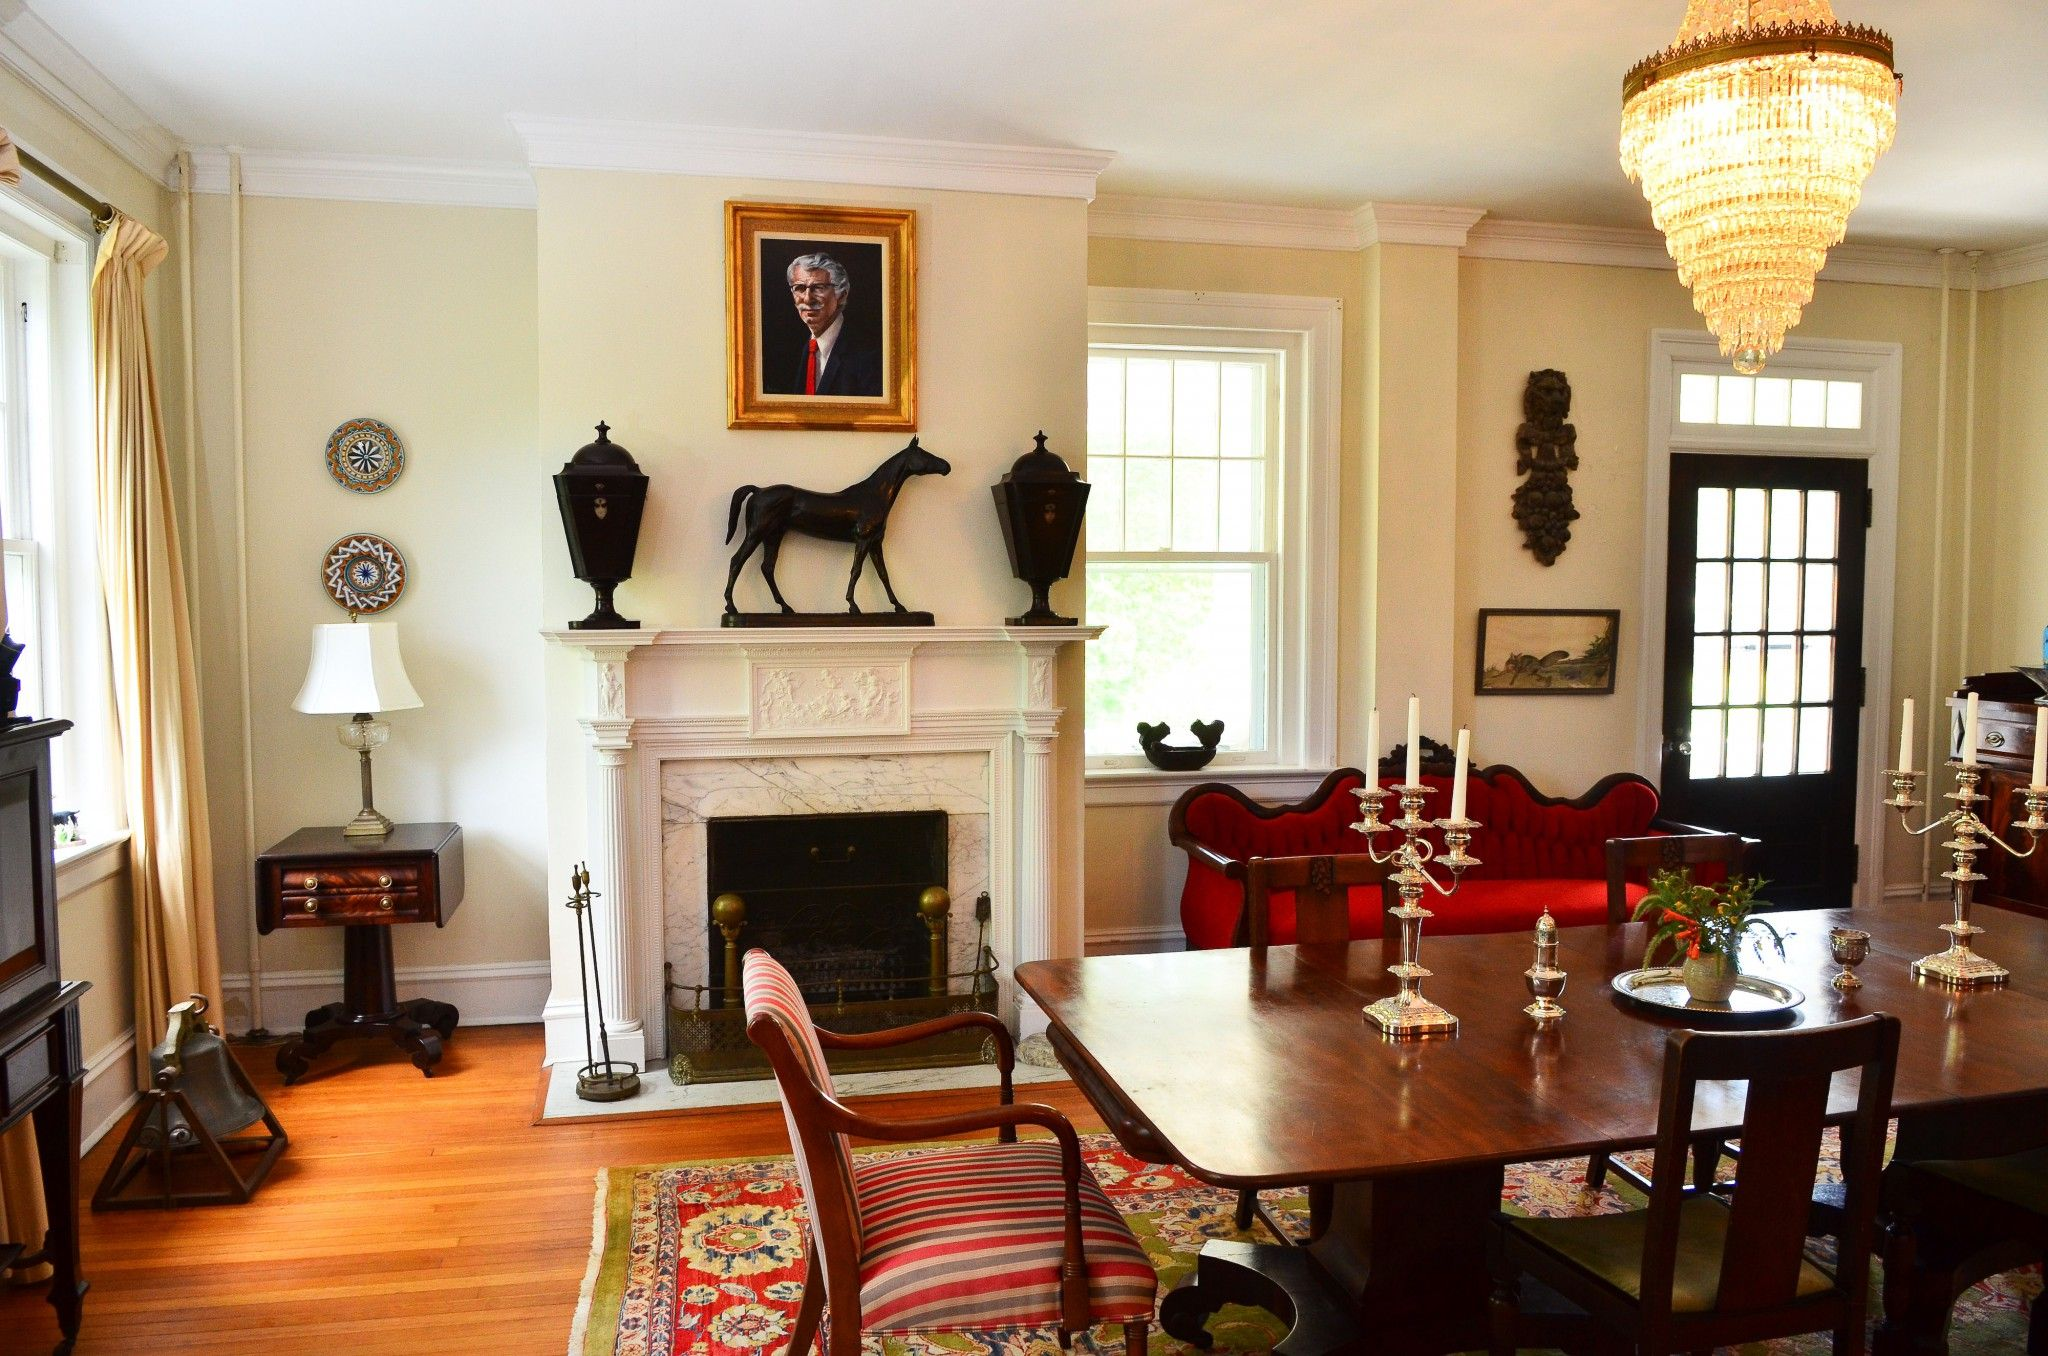 Fireplace At The Dining Room Small Design Idea For Your